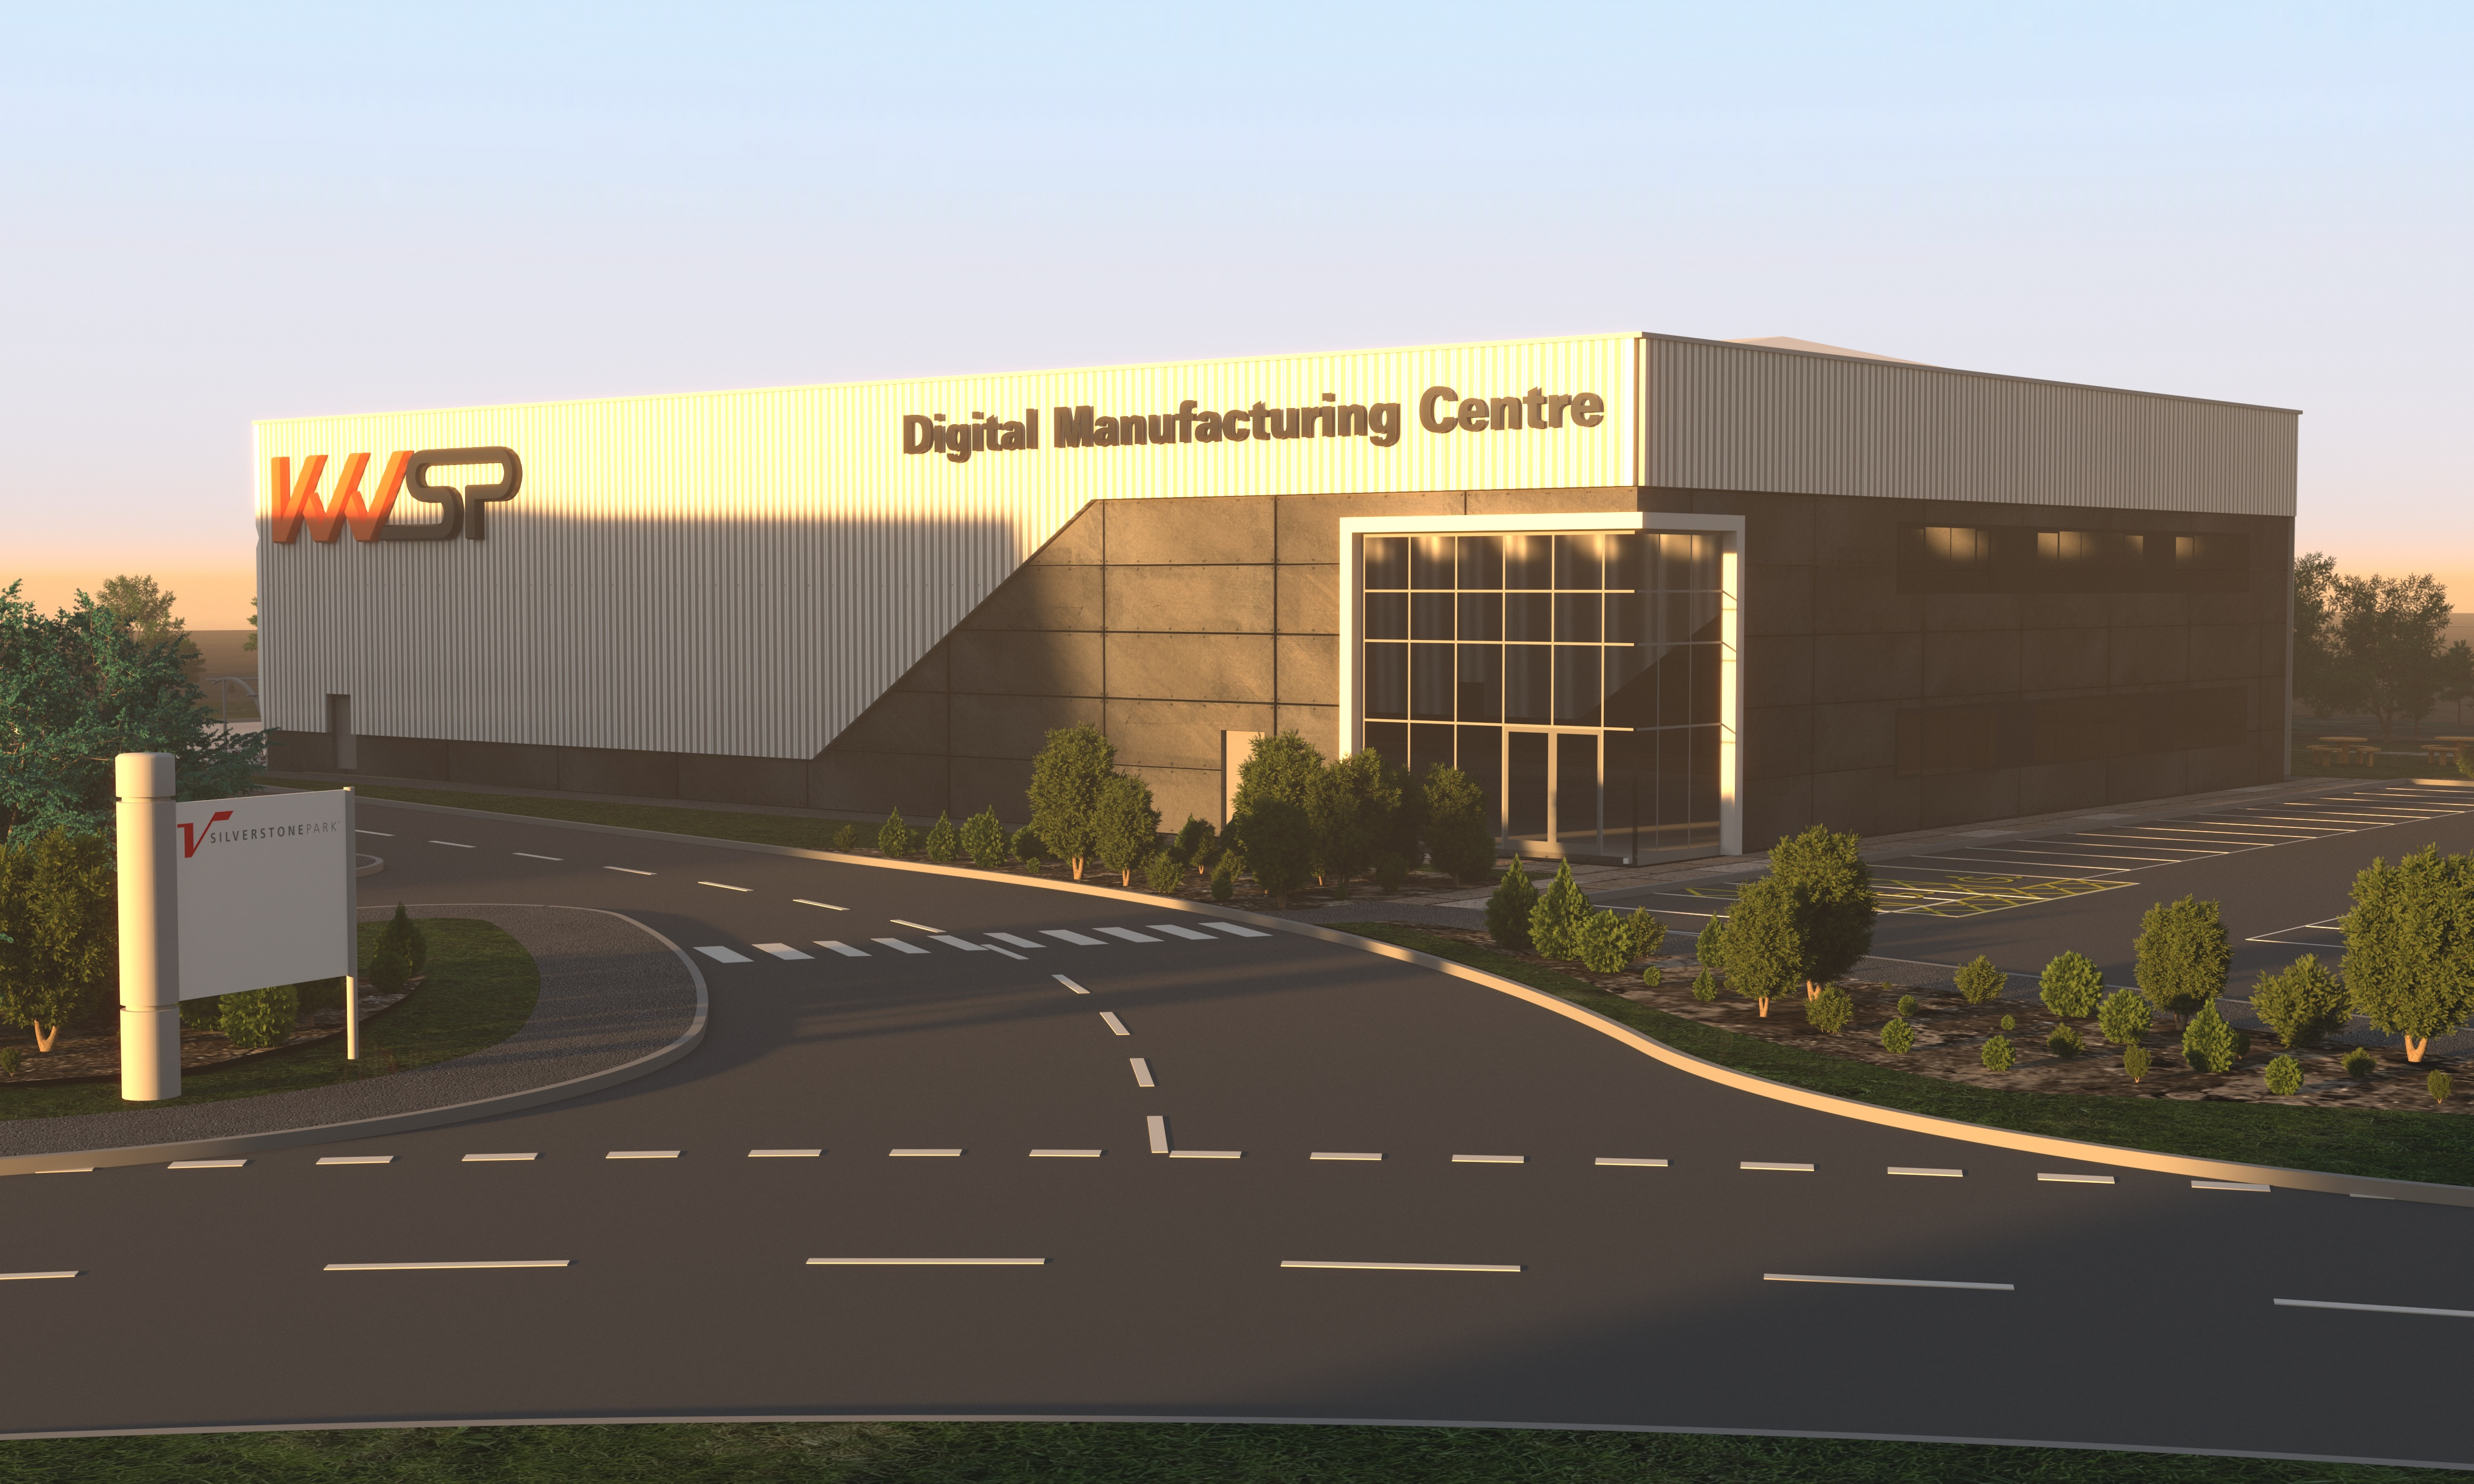 KWSP invests in the NEO800 3D printer for new Digital Manufacturing Centre